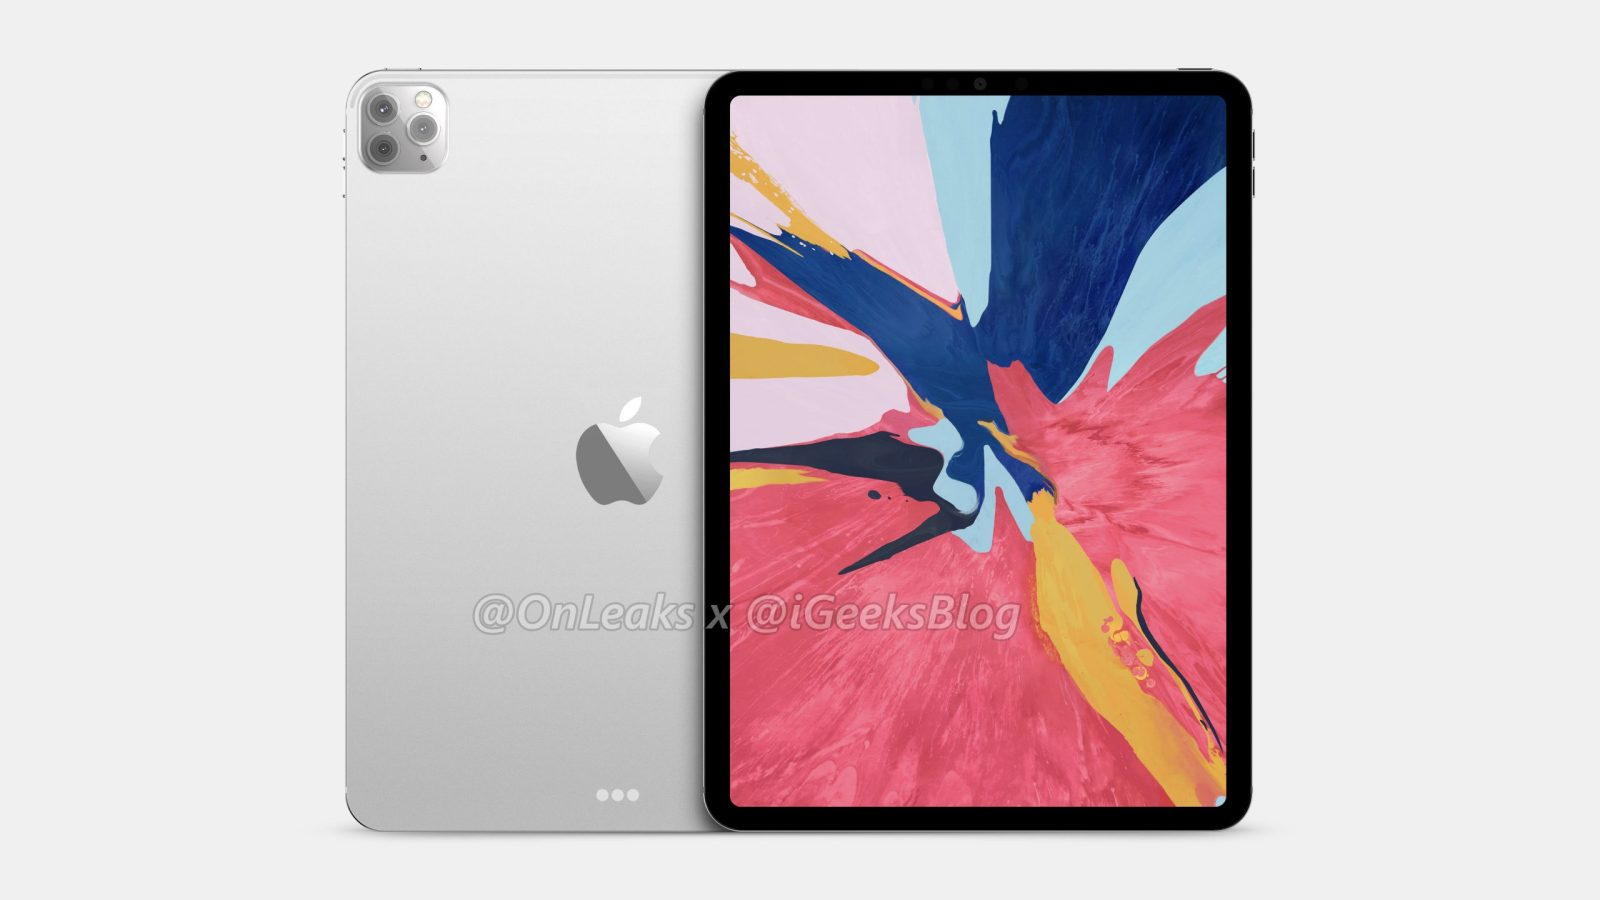 iPad Pro 2020 Front and Back showing screen and cameras